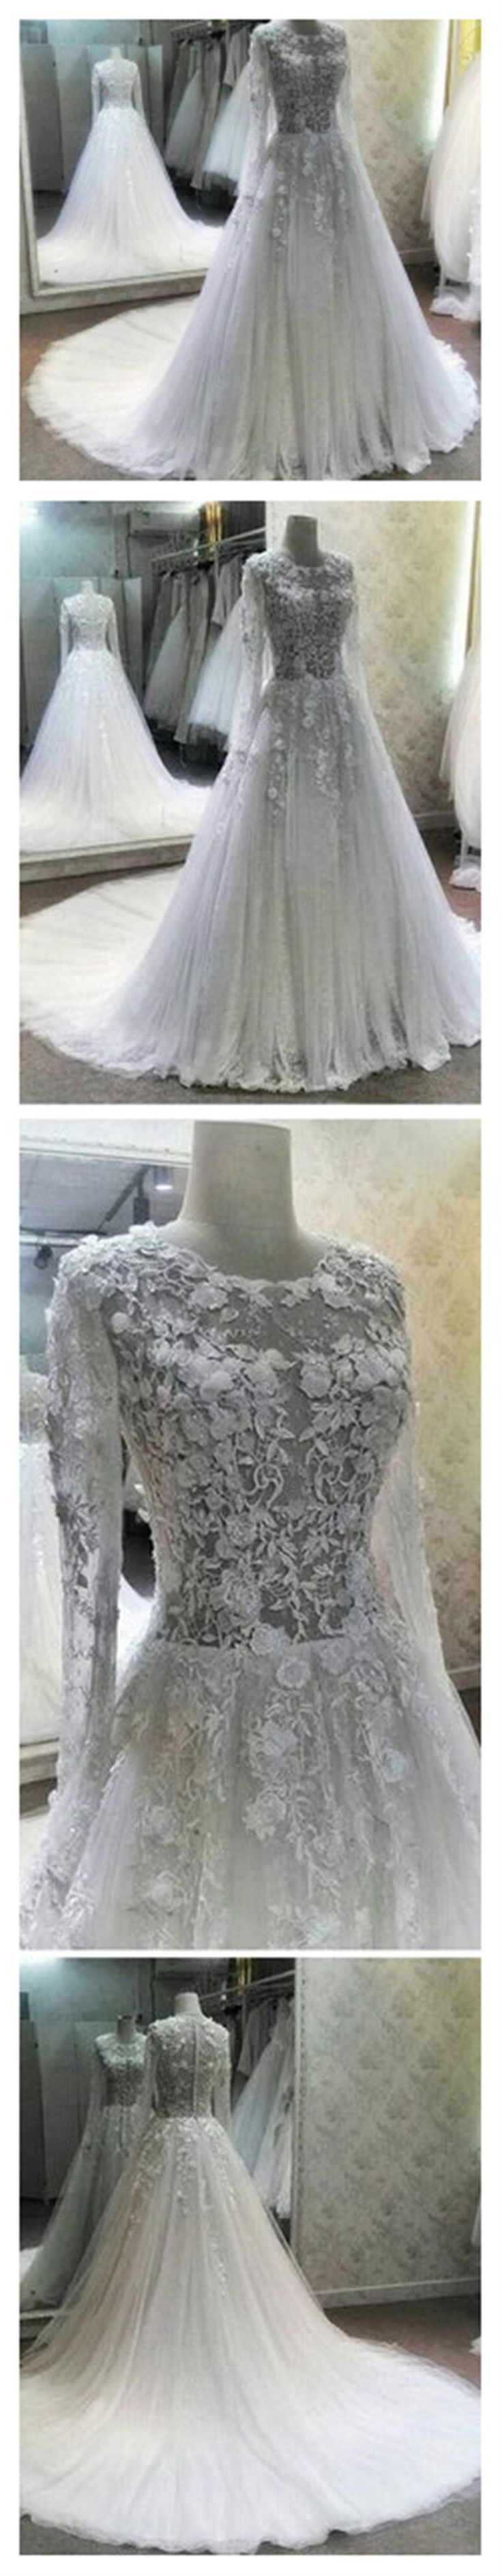 best wedding images on pinterest marriage wedding dressses and